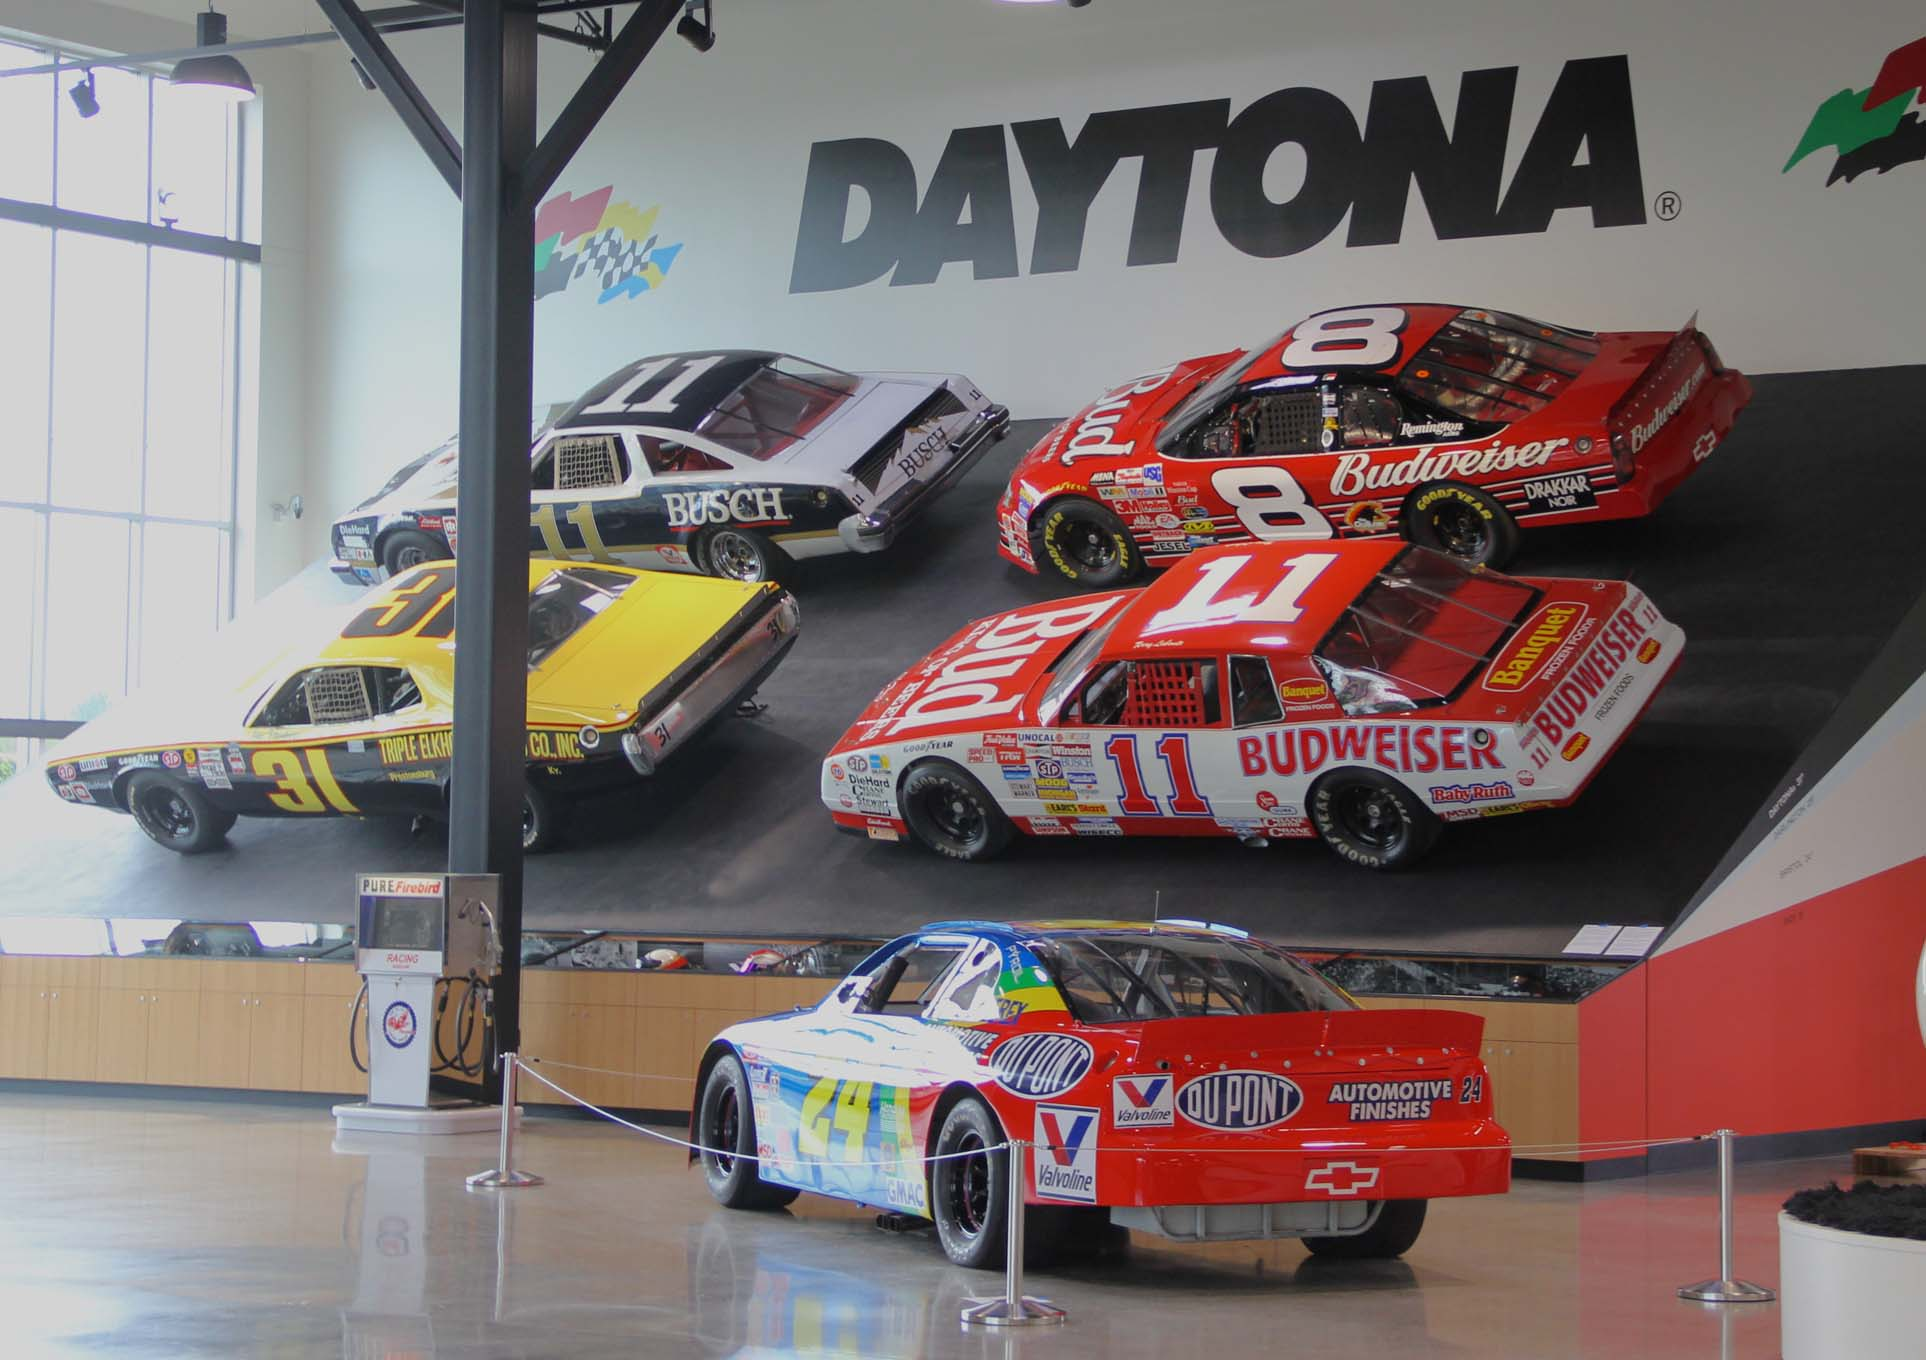 The banked oval features an accurate Daytona 31-degree bank with Terry Lebonte's 1988 Monte Carlo, Cale Yarborough's 1979 Olds 442, Jim Vandiver's 1974 Charger, and Dale Earnhardt Jr.'s 2000 Impala. These are not body shells on a wooden frame but are the actual, restored race cars. The exhibit also indicates the degree of banking for a number of other tracks on the side of the display.